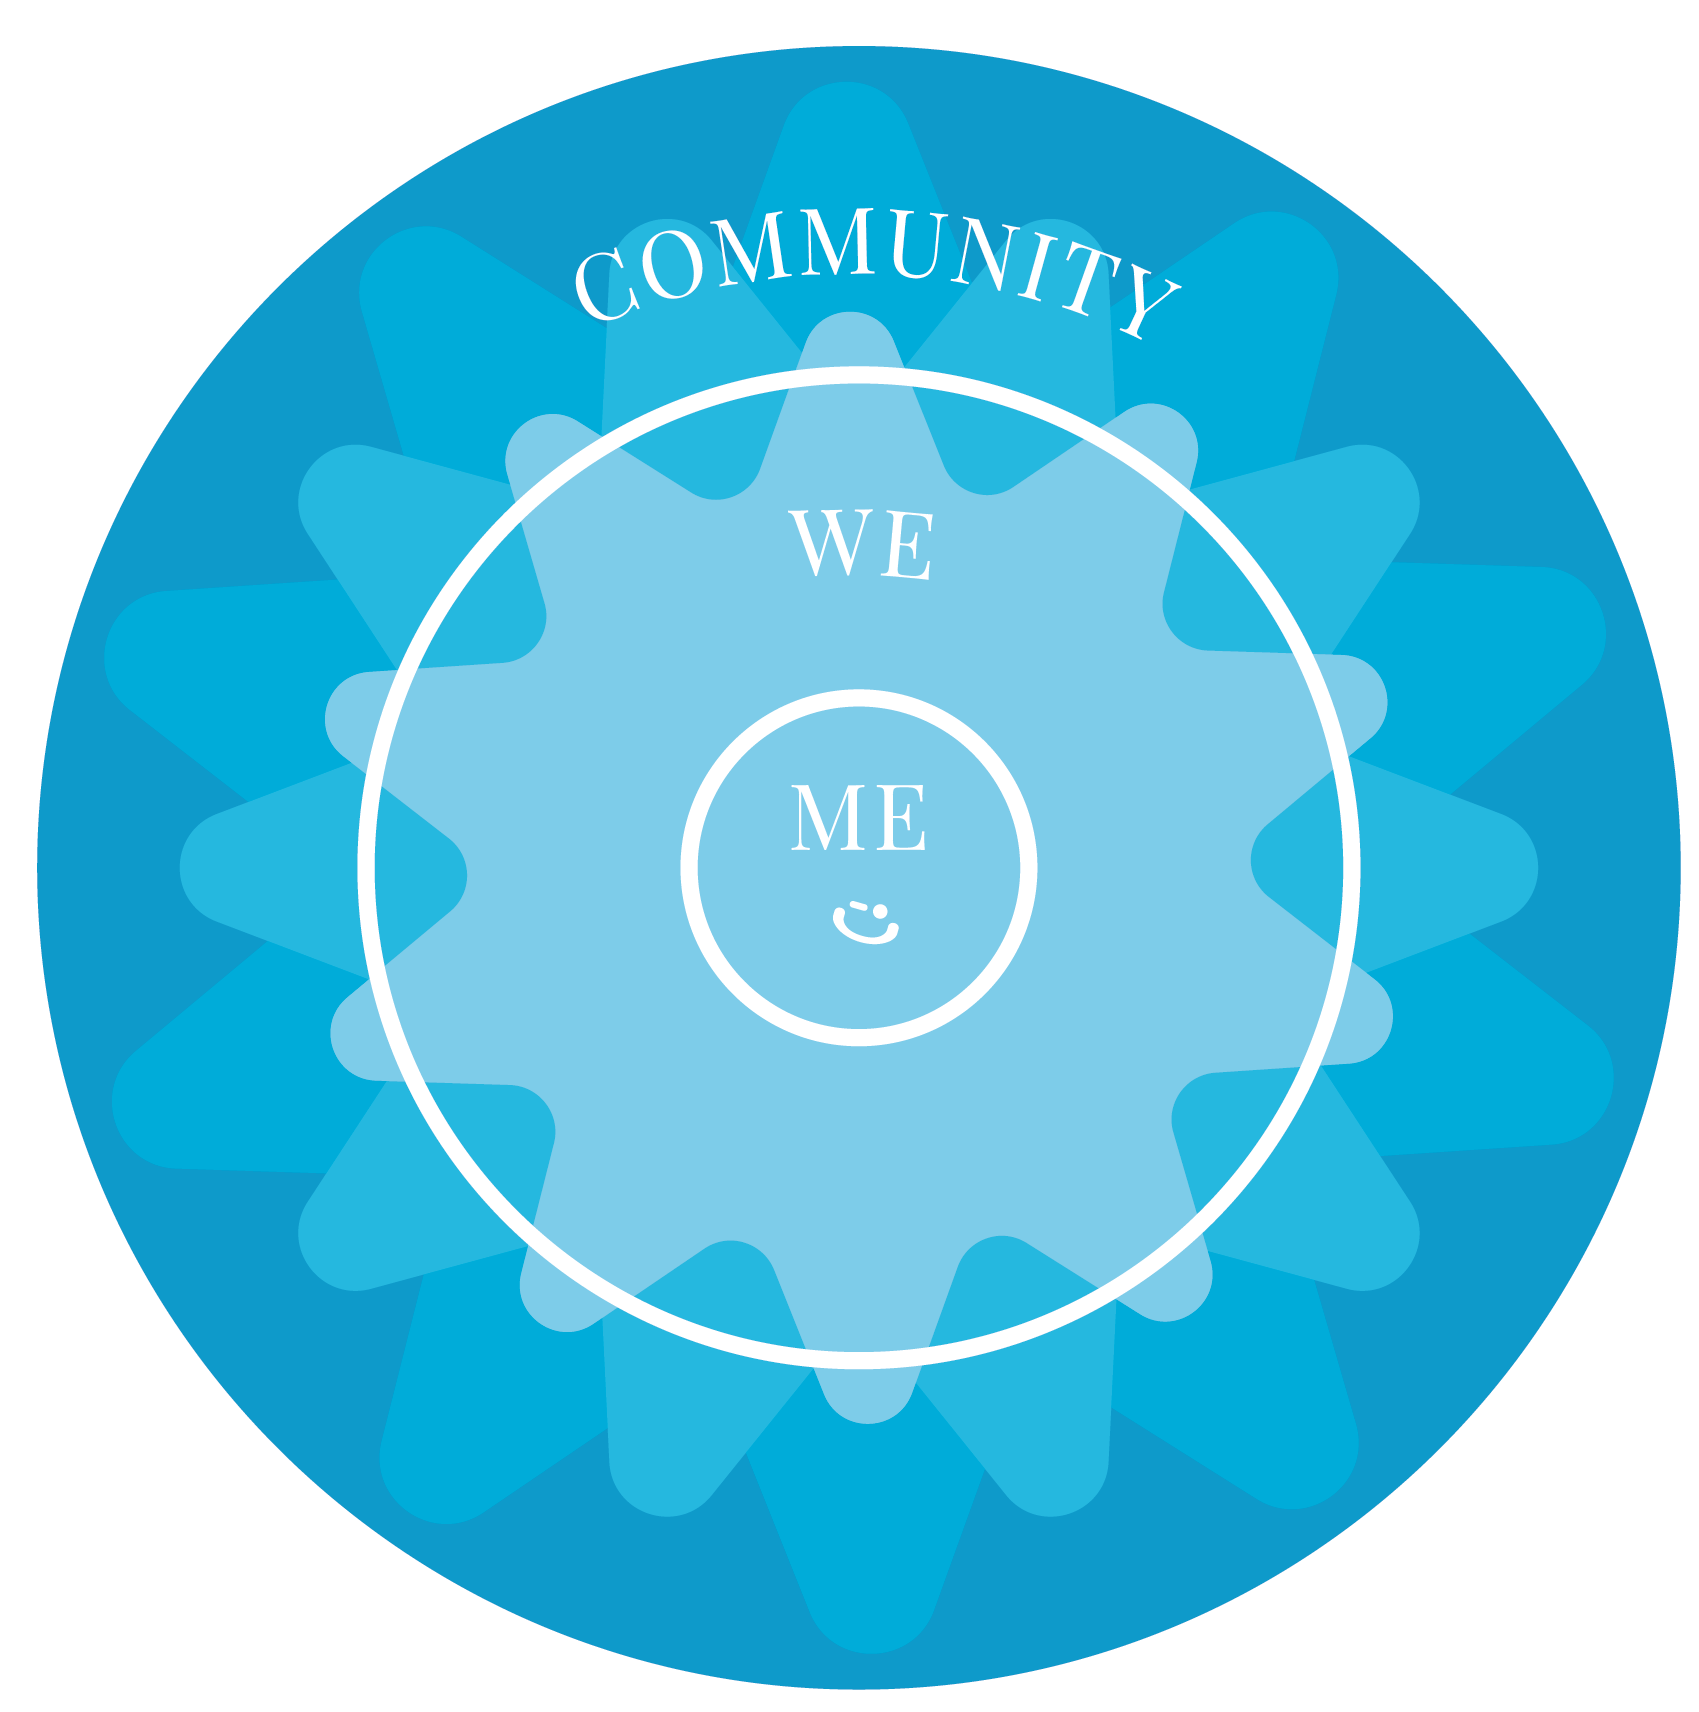 Delivering Happiness Me, We, Community dh blueprint model